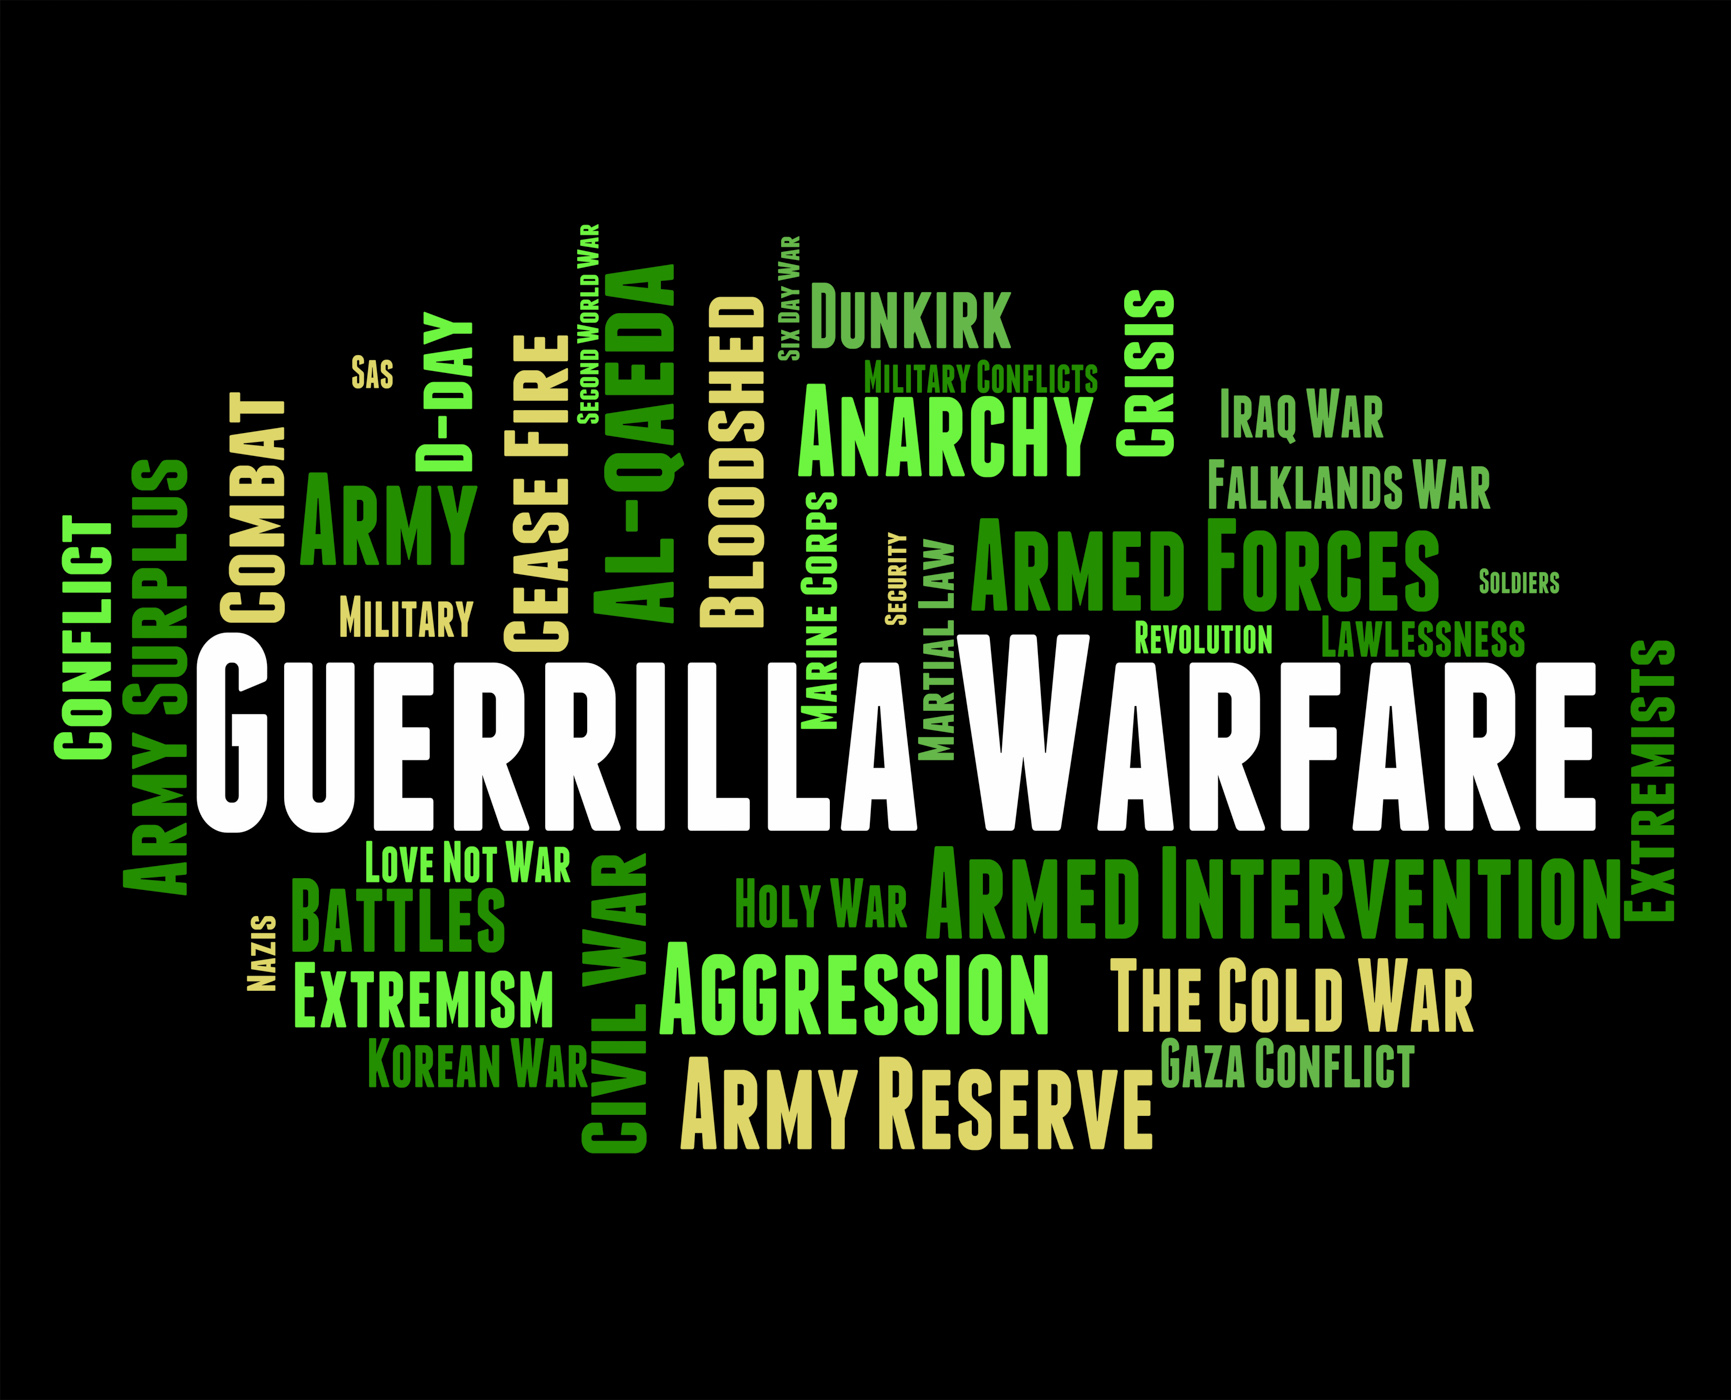 Guerrilla Warfare Shows Resistance Fighter And Clashes, Battle, Partisan, Wordclouds, Wordcloud, HQ Photo